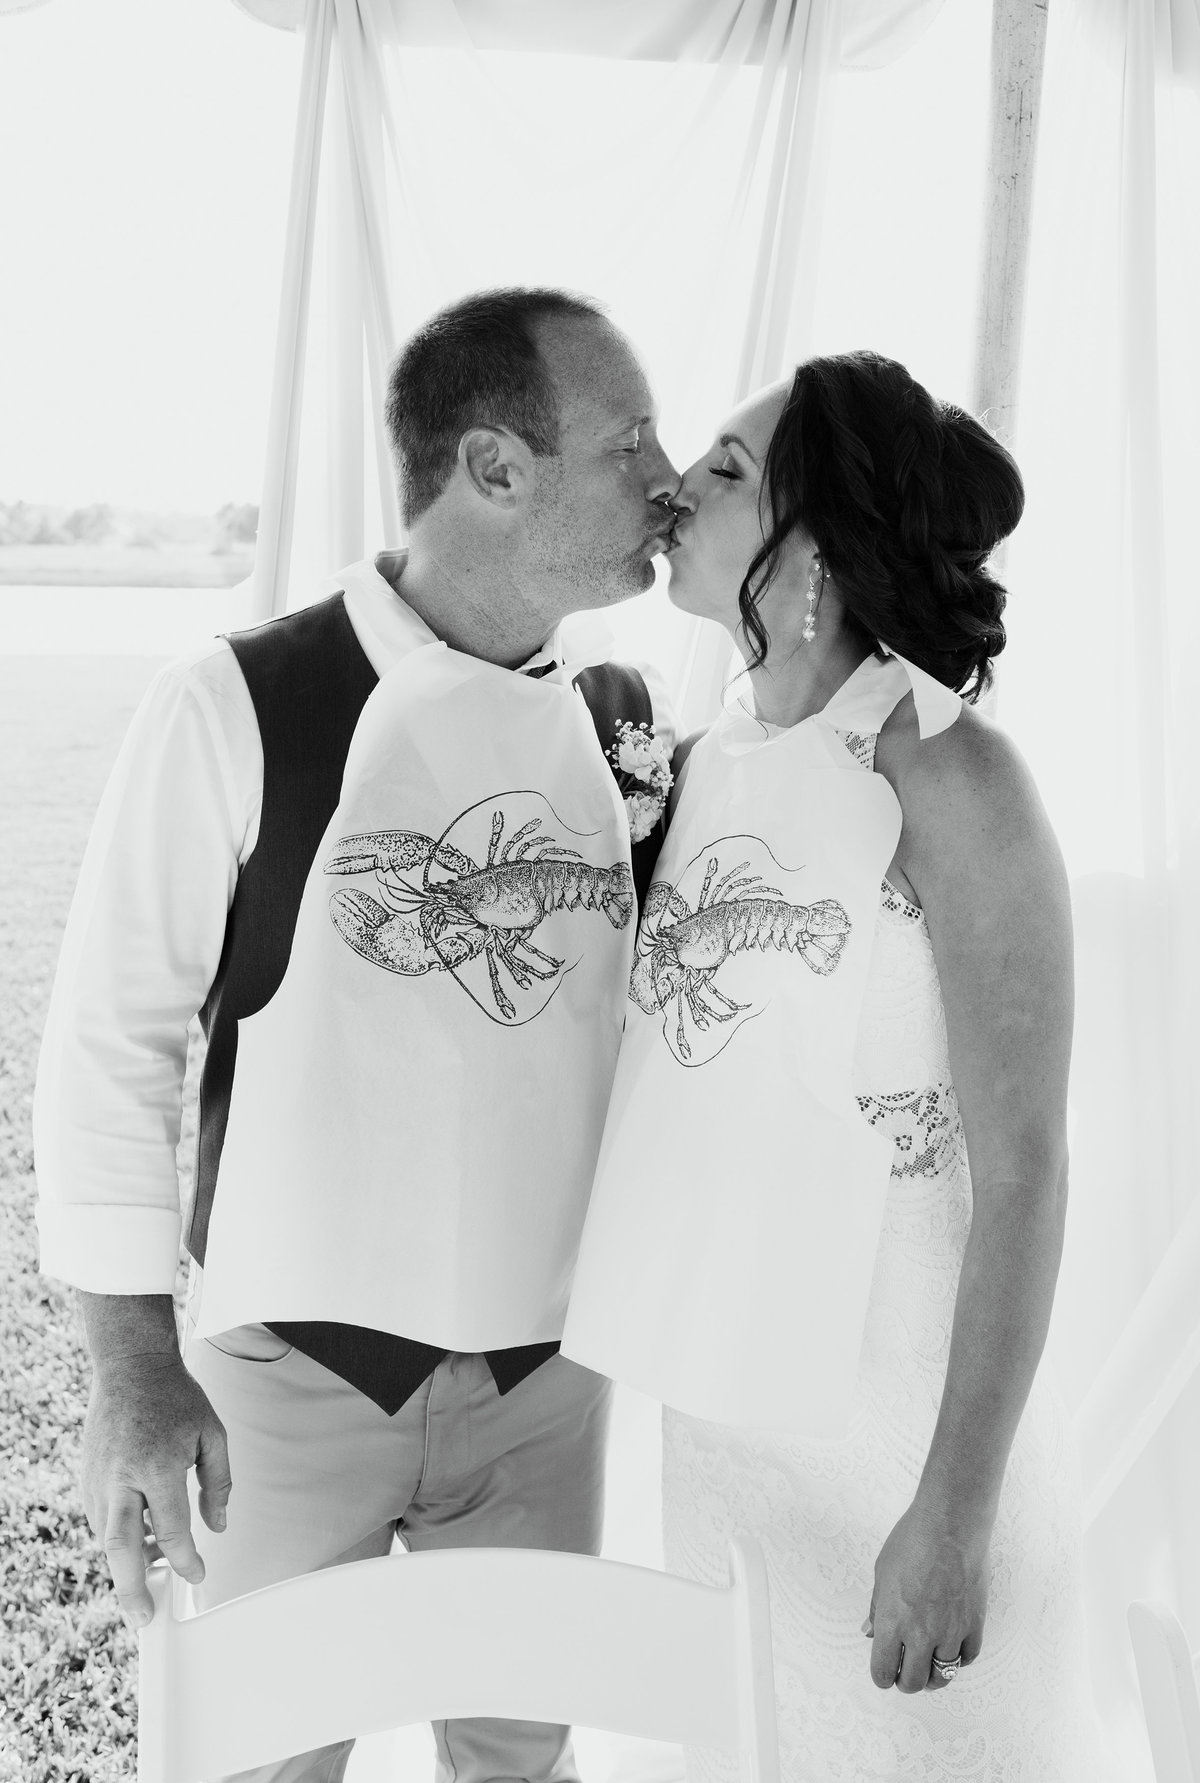 kimberly-hoyle-photography-kelly-david-grant-florida-wedding-78